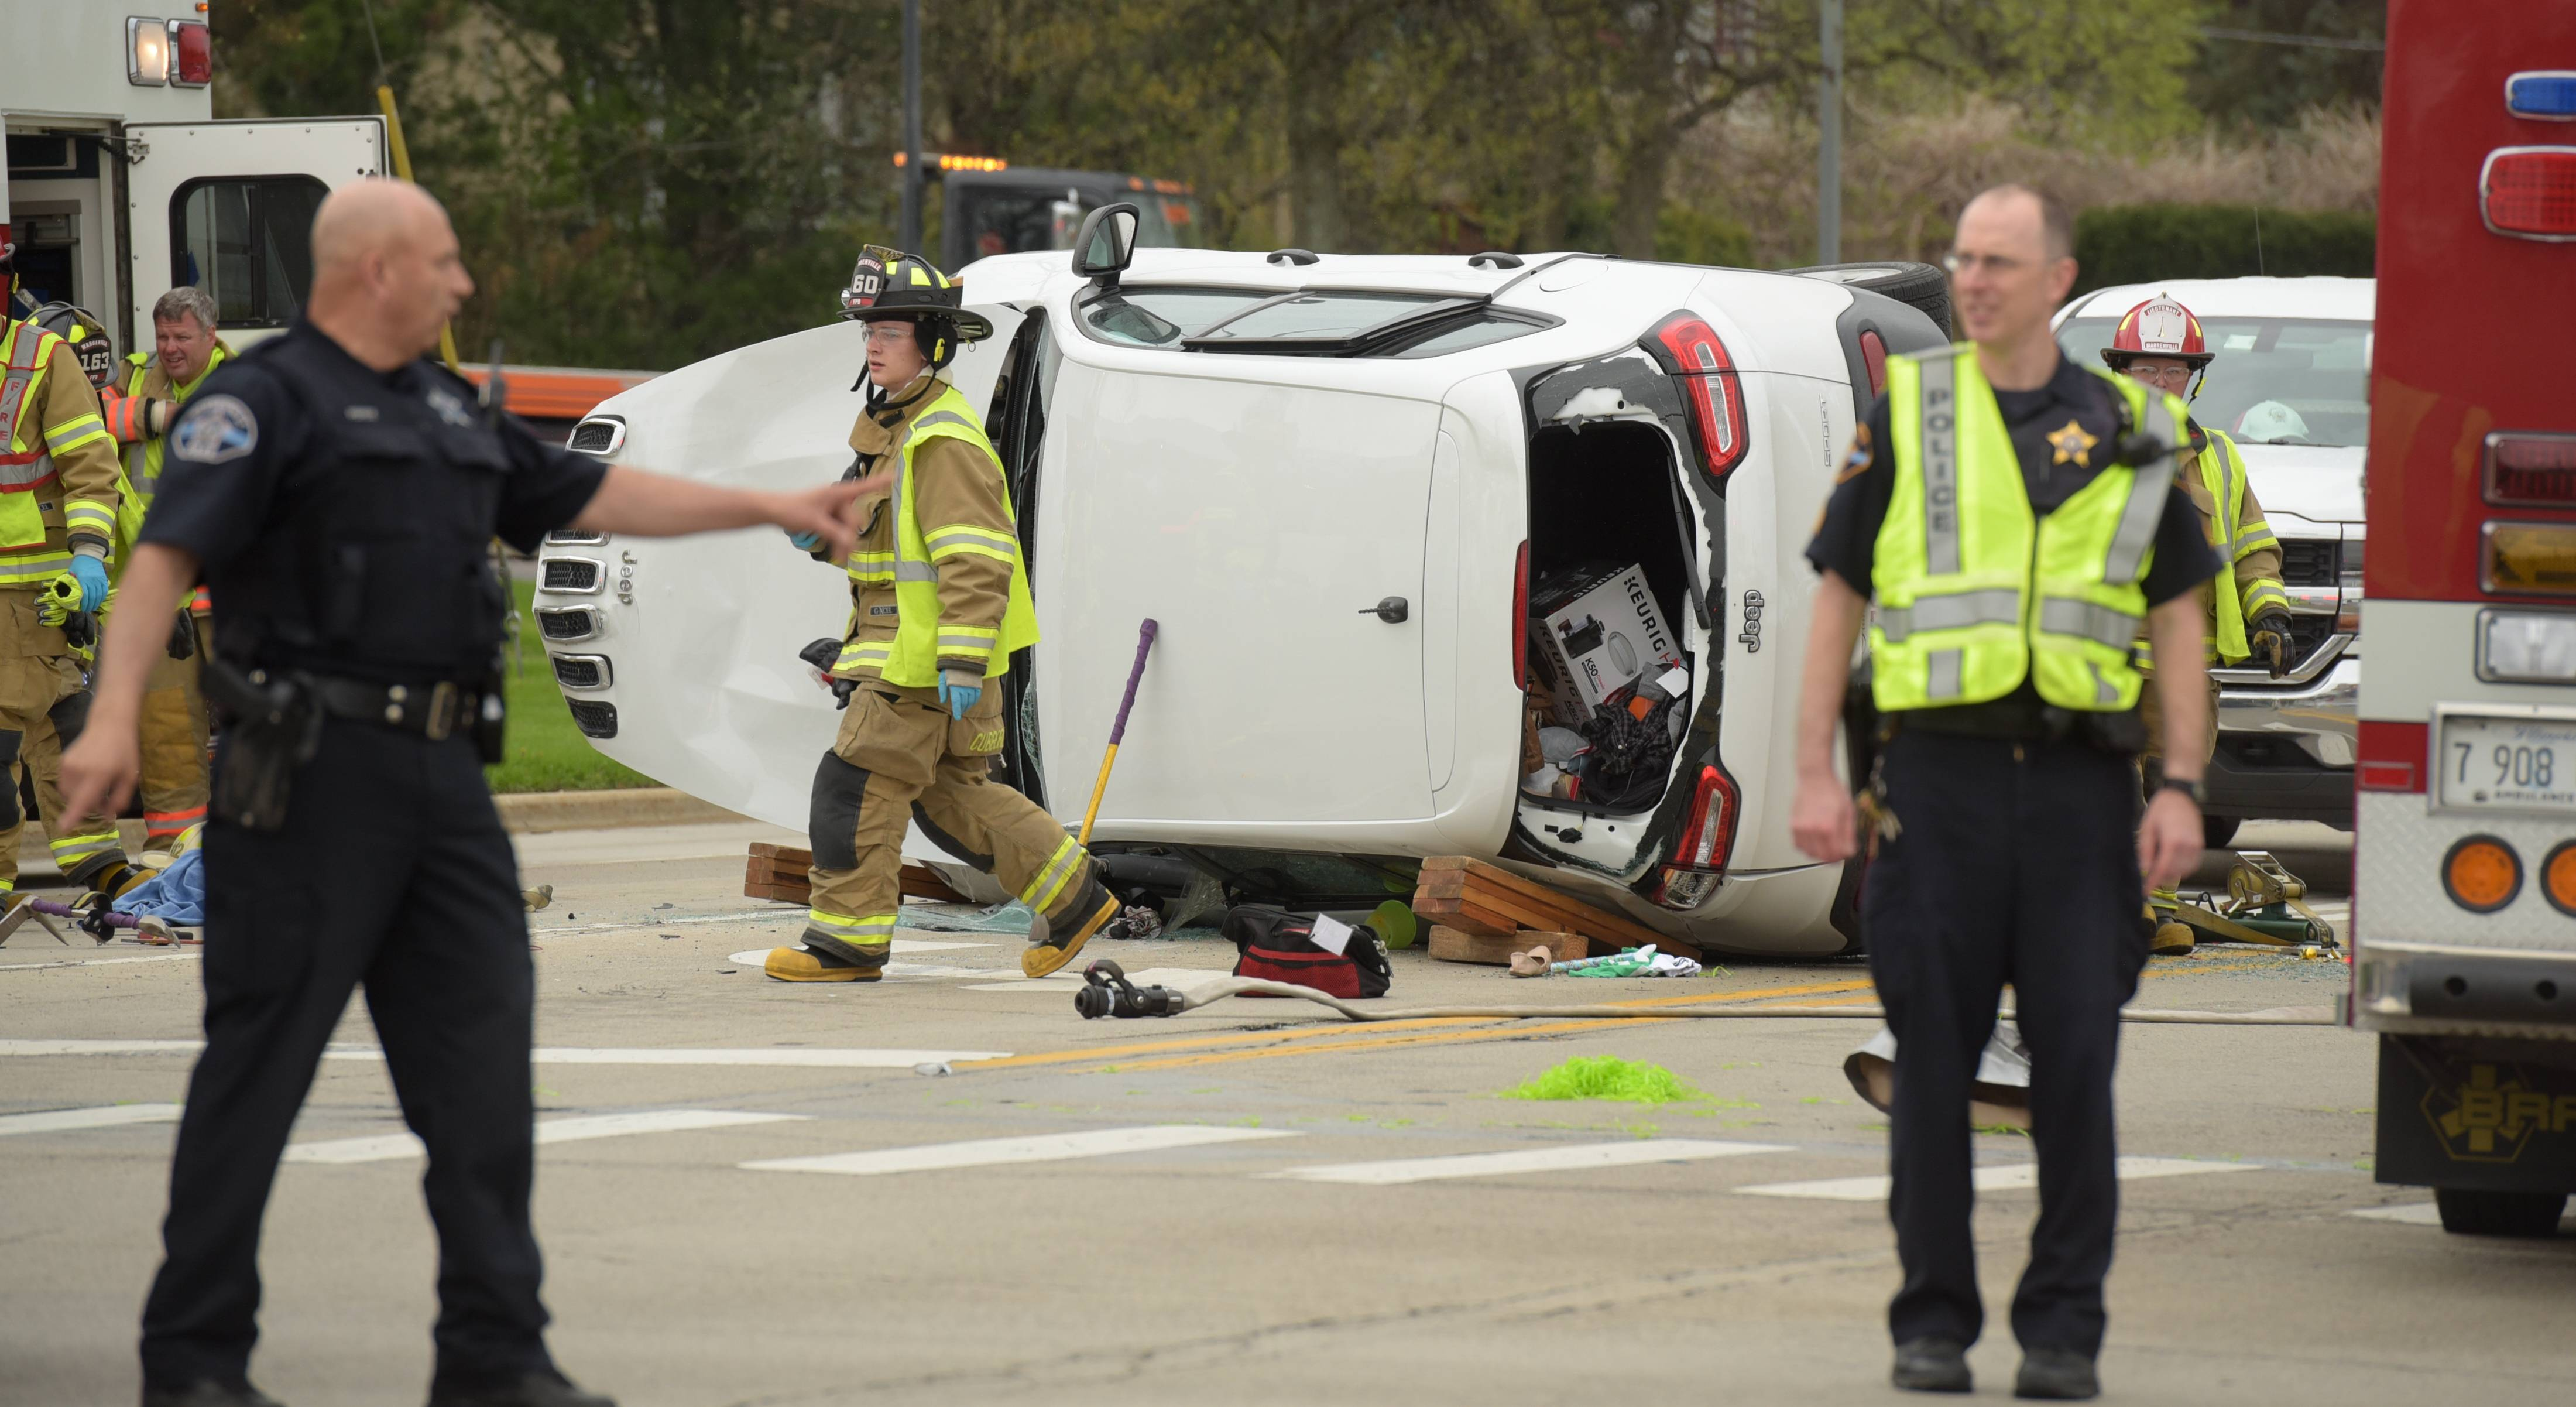 The crash at Winfield and Warrenville roads in Warrenville sent four people to Edward Hospital on Wednesday.